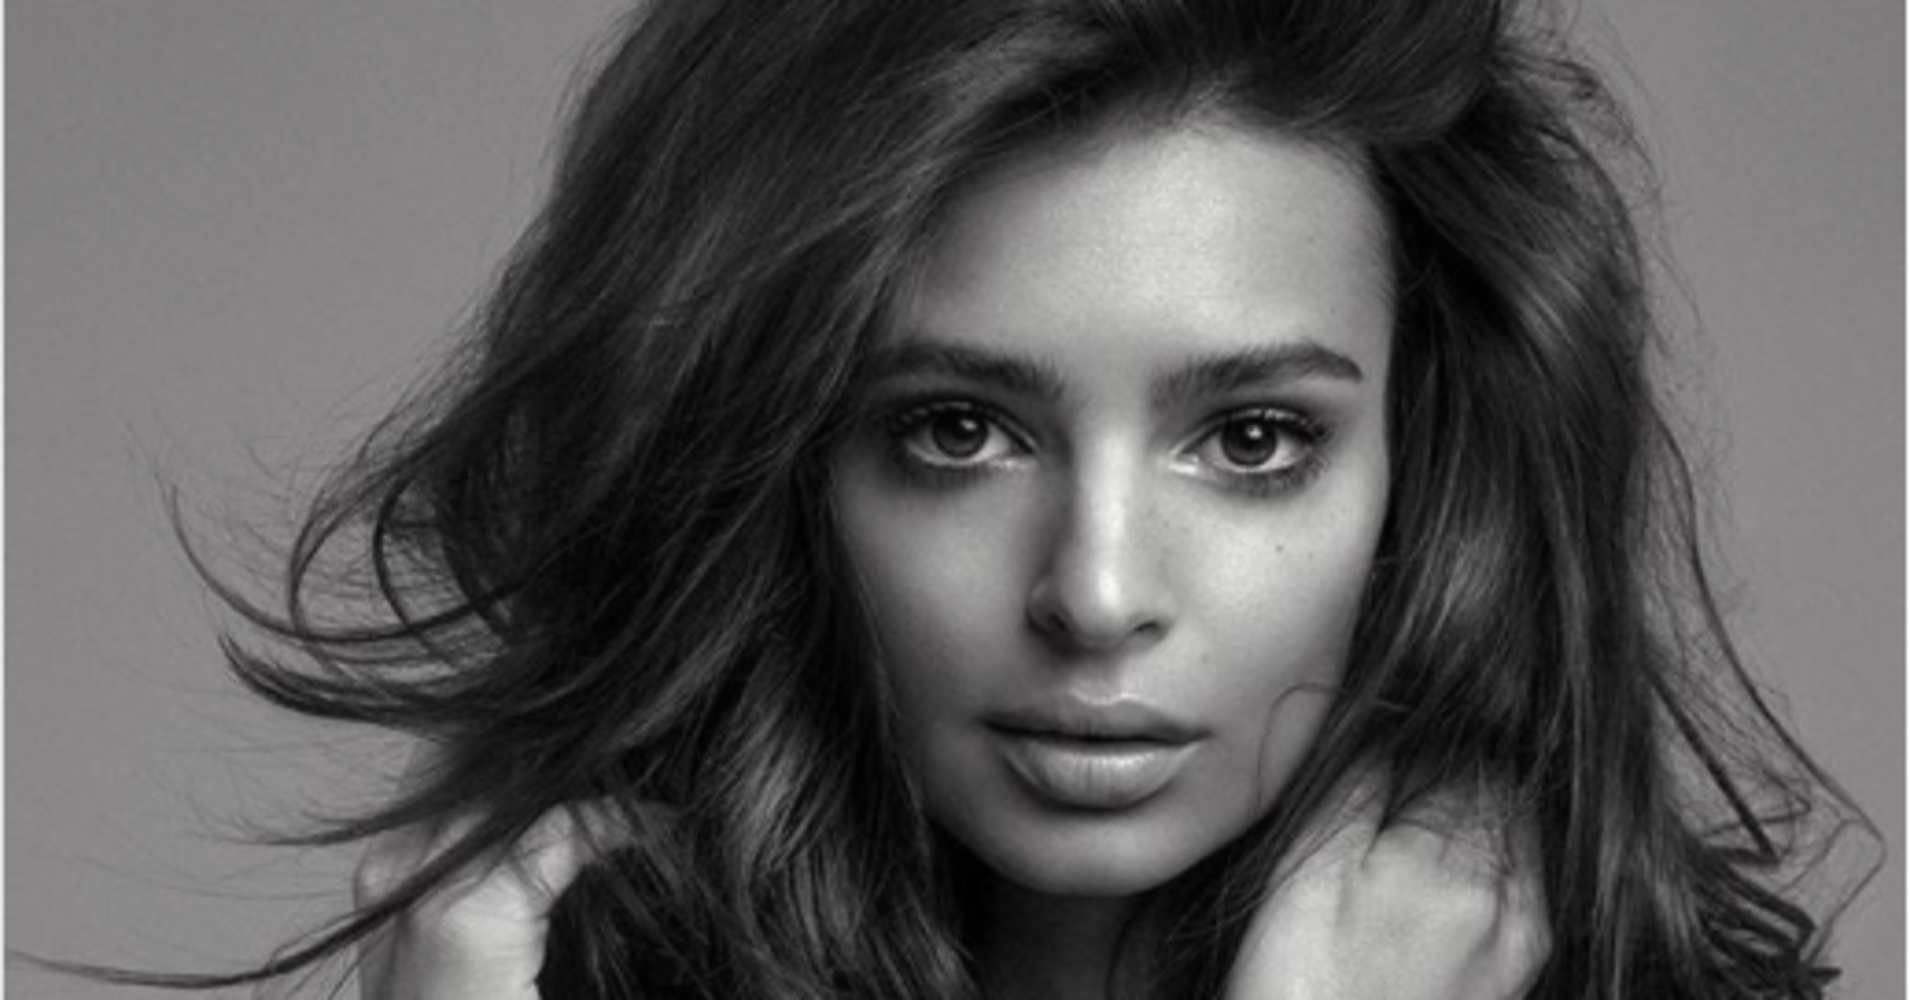 People Are Pissed About One Of Emily Ratajkowski's Latest Instagram Posts